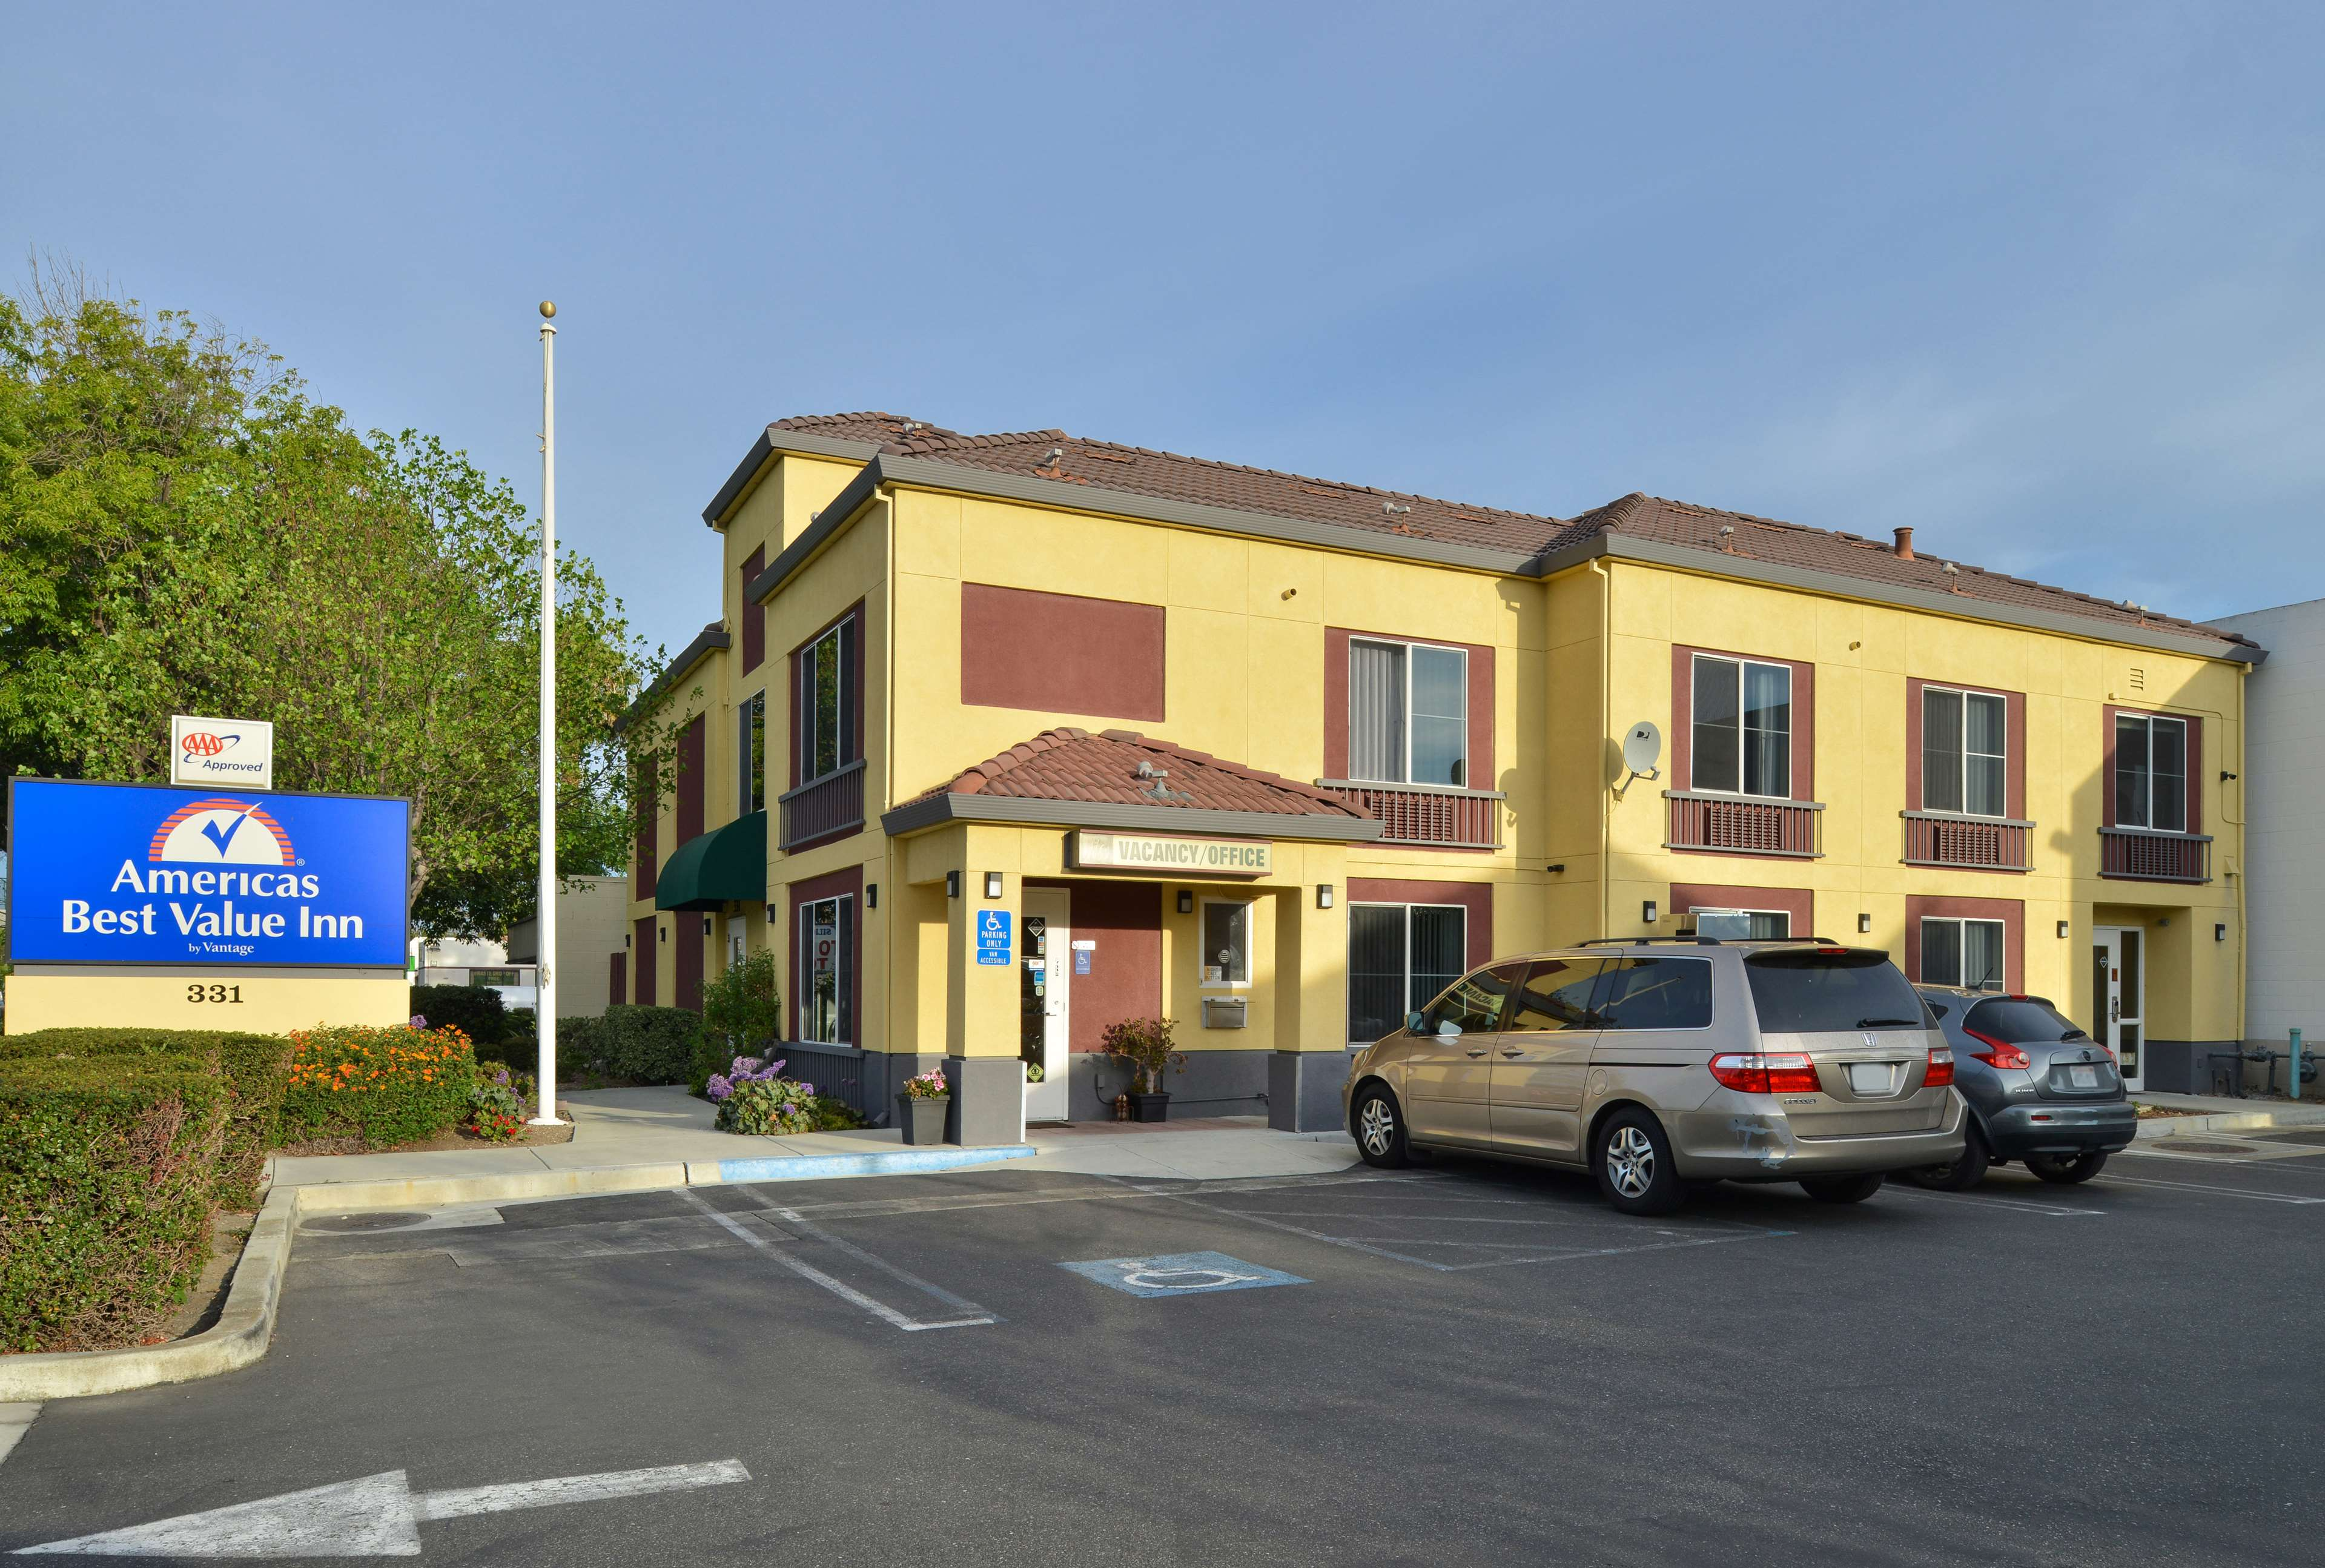 Americas best value inn sunnyvale coupons near me in for Americas best coupons